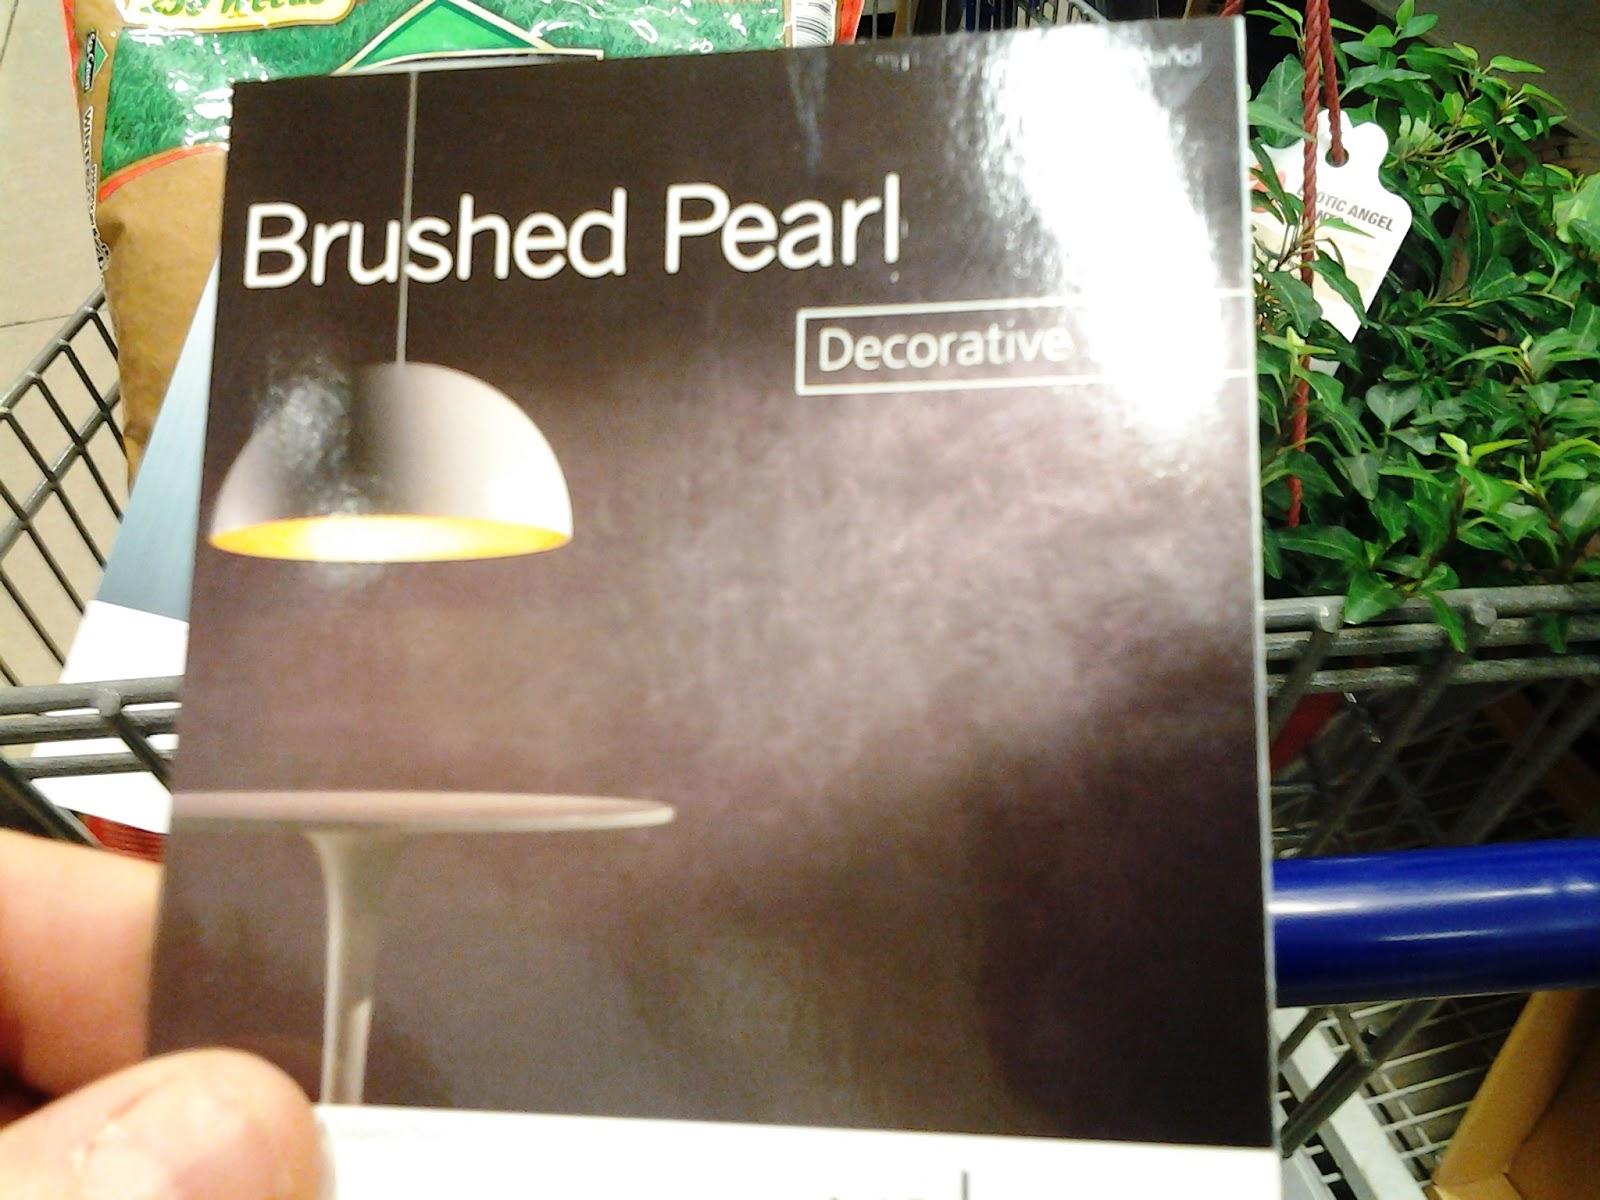 Brushed Pearl Maybe